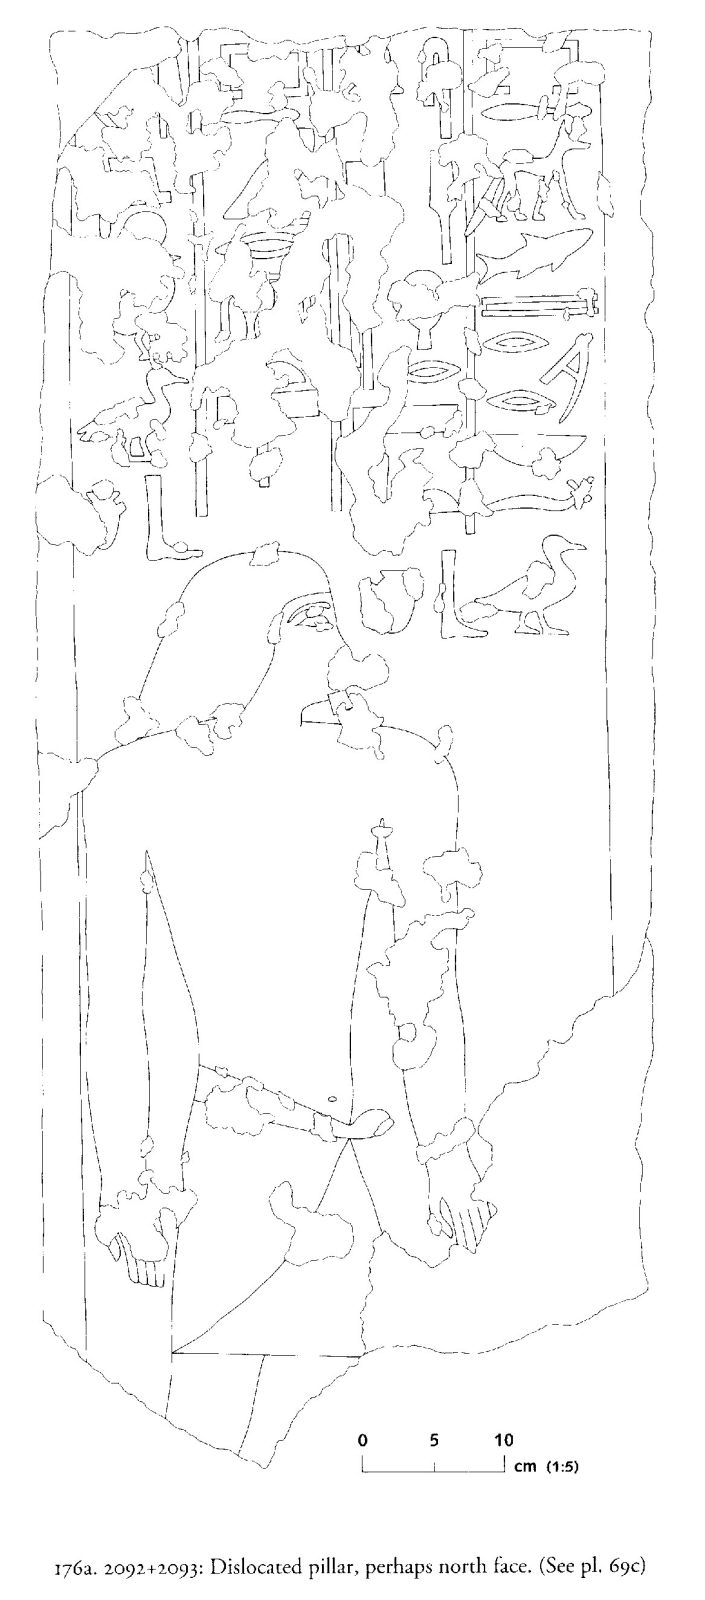 Drawings: G 2092+2093: relief from dislocated pillar, possibly N face